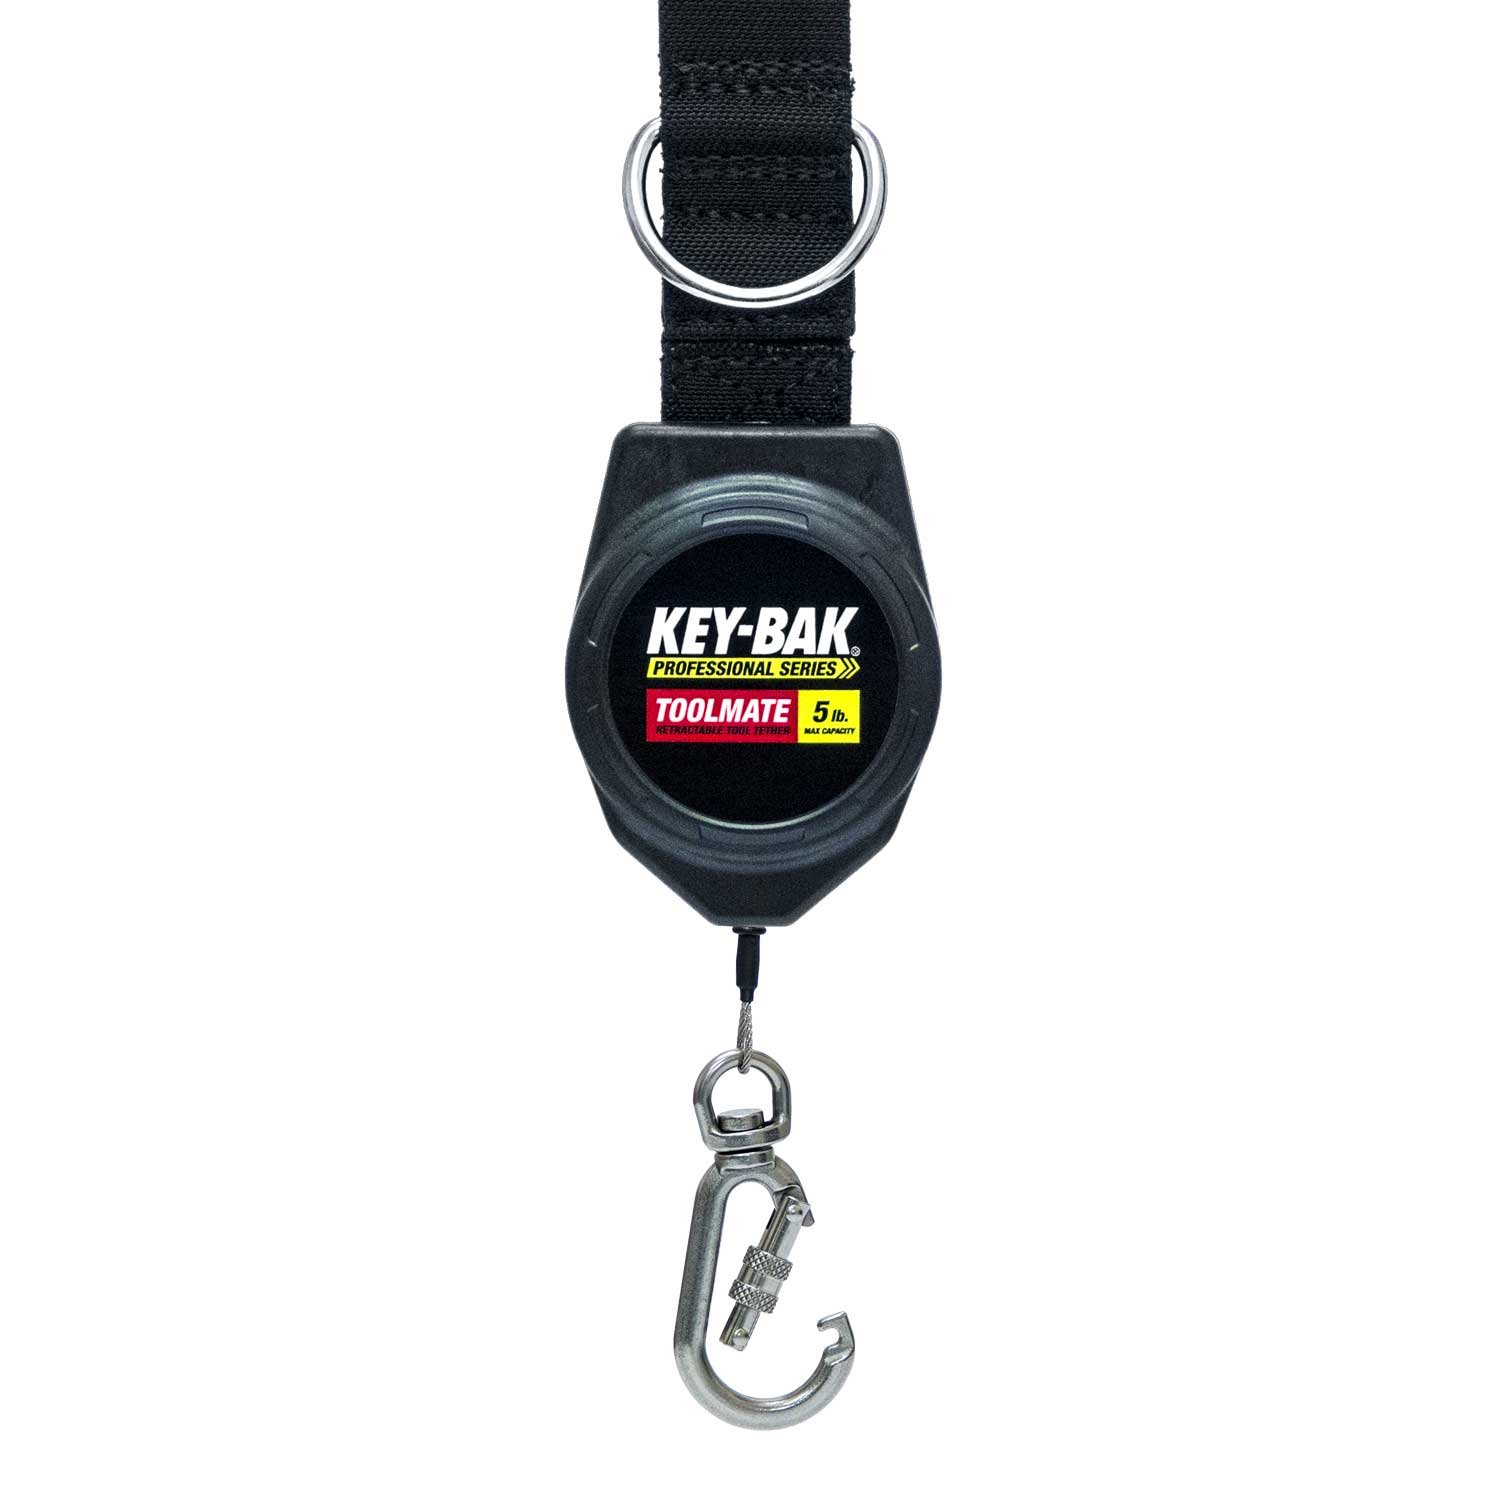 KEY-BAK Toolmate Retractable Tool Lanyard, 5lb. Tool Capacity, Safety Tell-Tale, Locking Swivel Carabiner, Stainless Steel Coated Cable